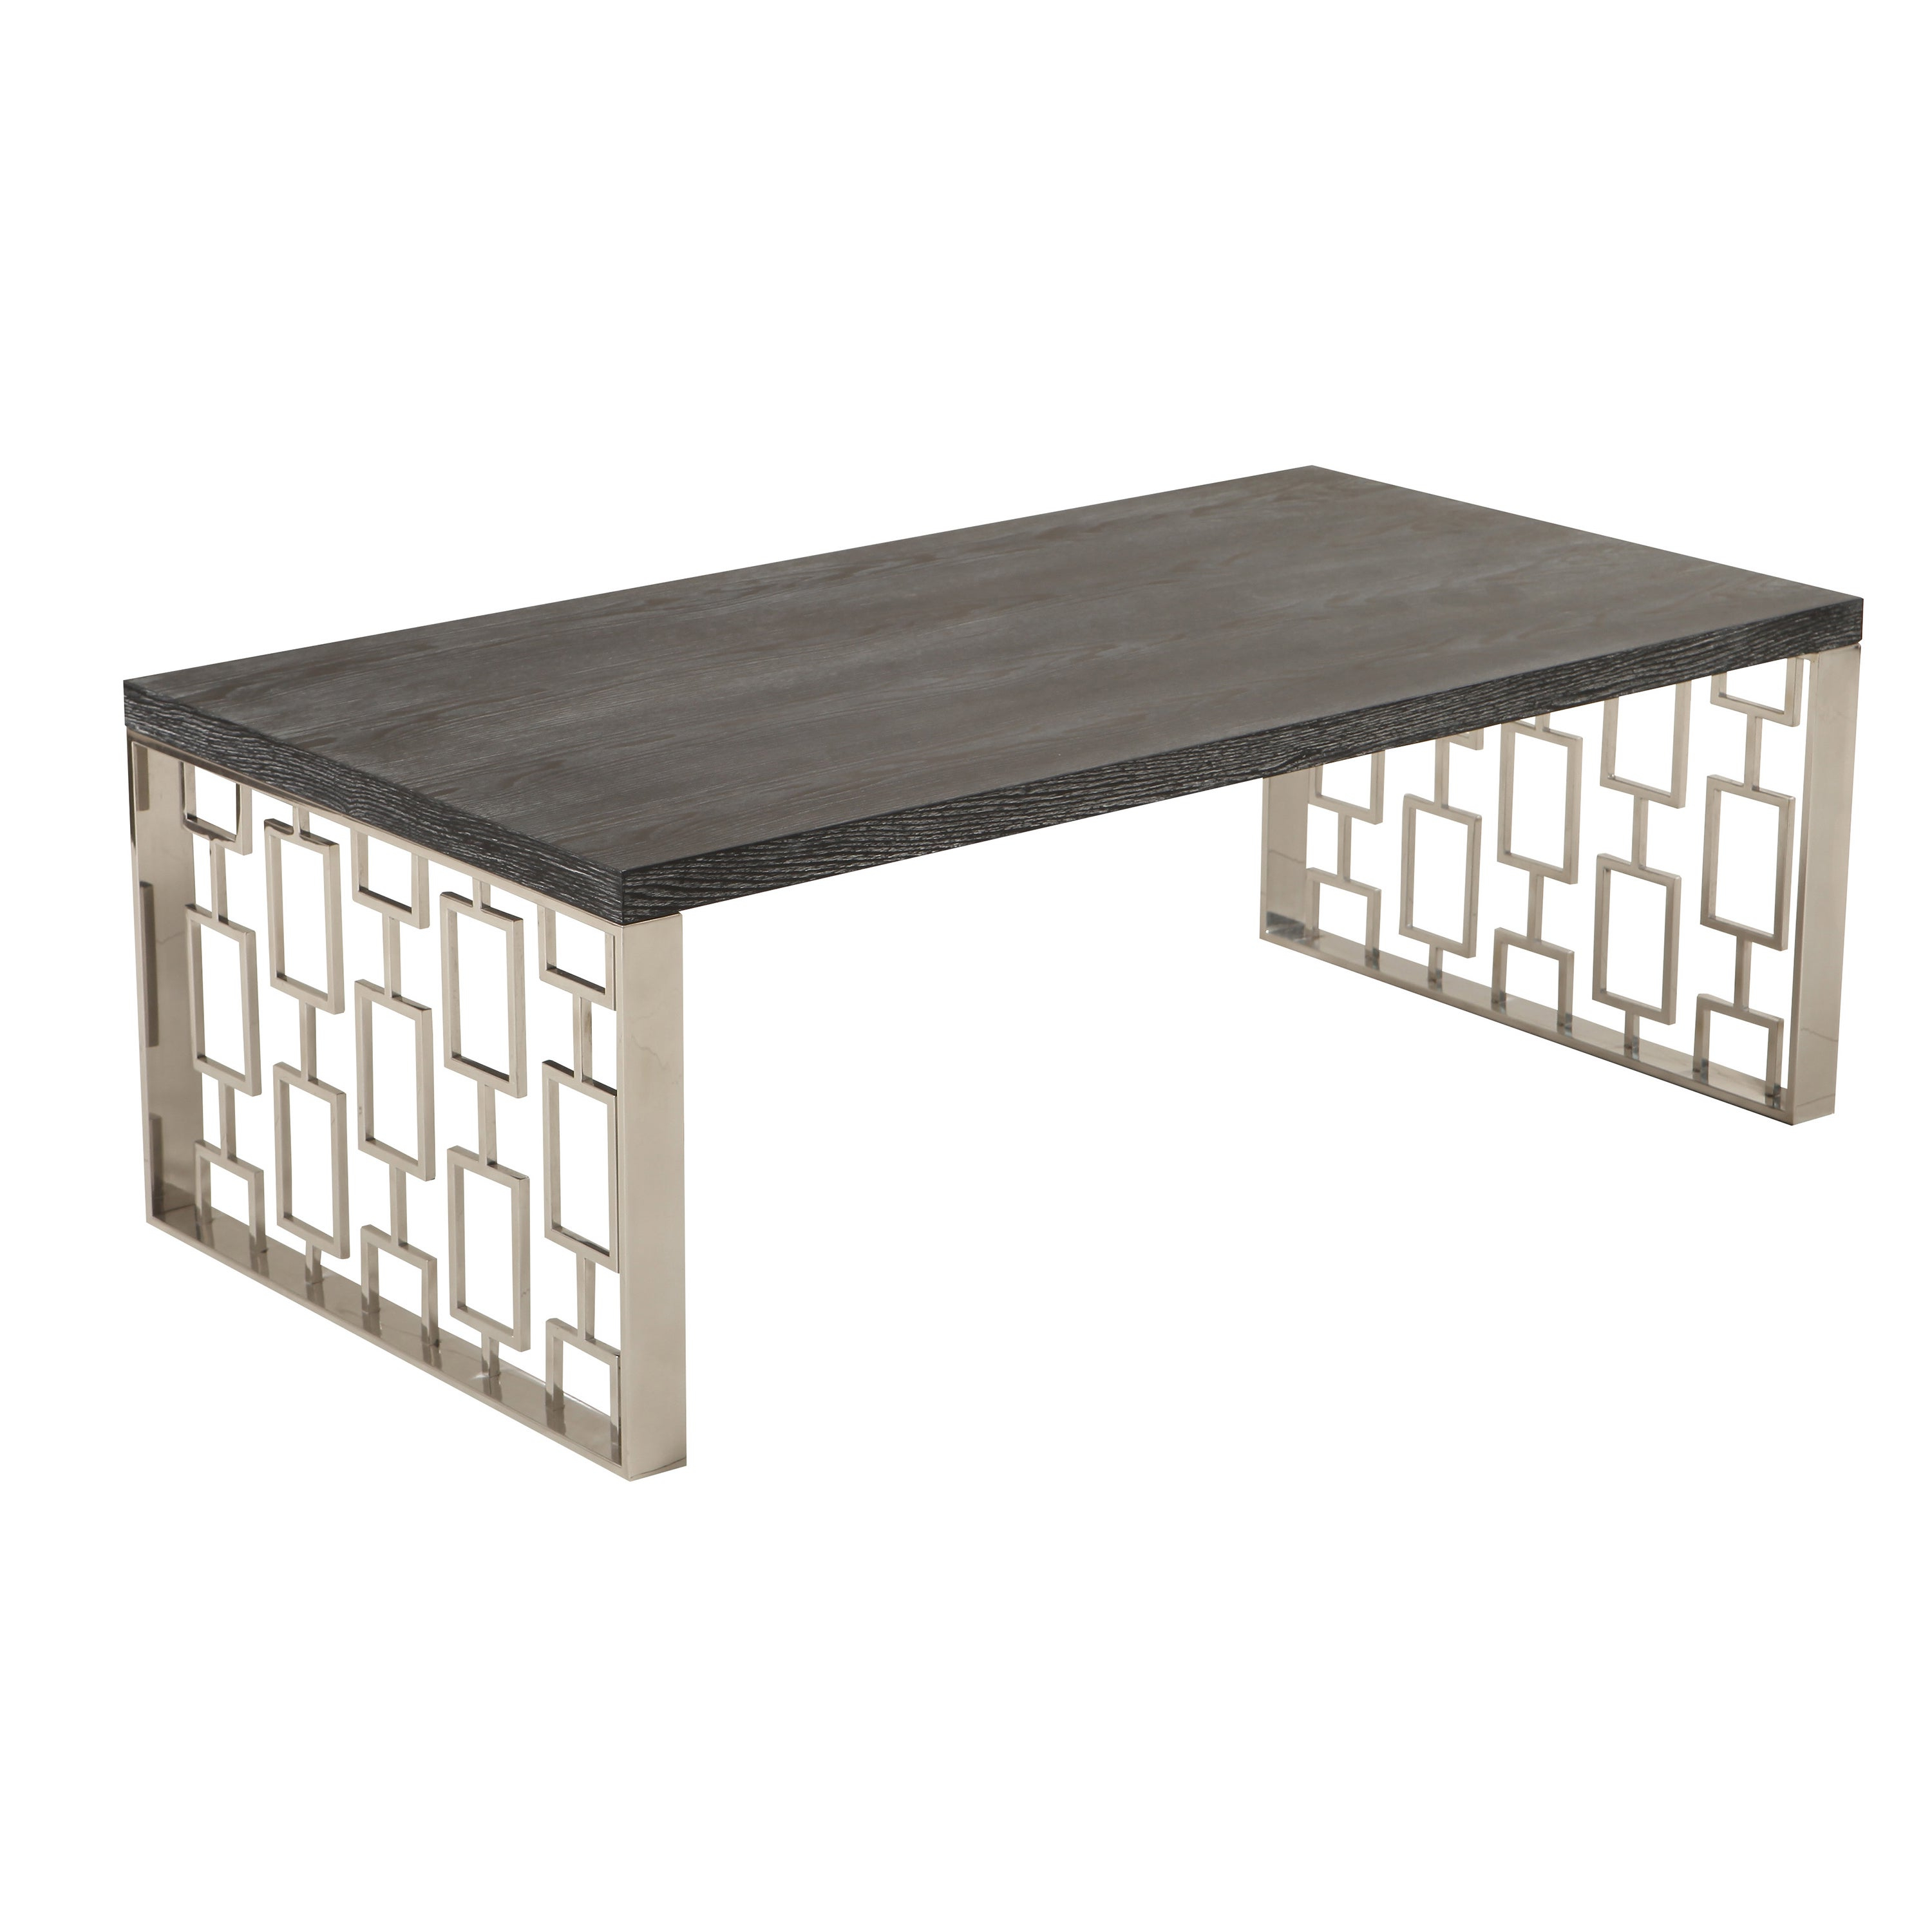 Skyline Ash Coffee Table In Fashionable Tribeca Contemporary Distressed Silver And Smoke Grey Coffee Tables (View 14 of 20)